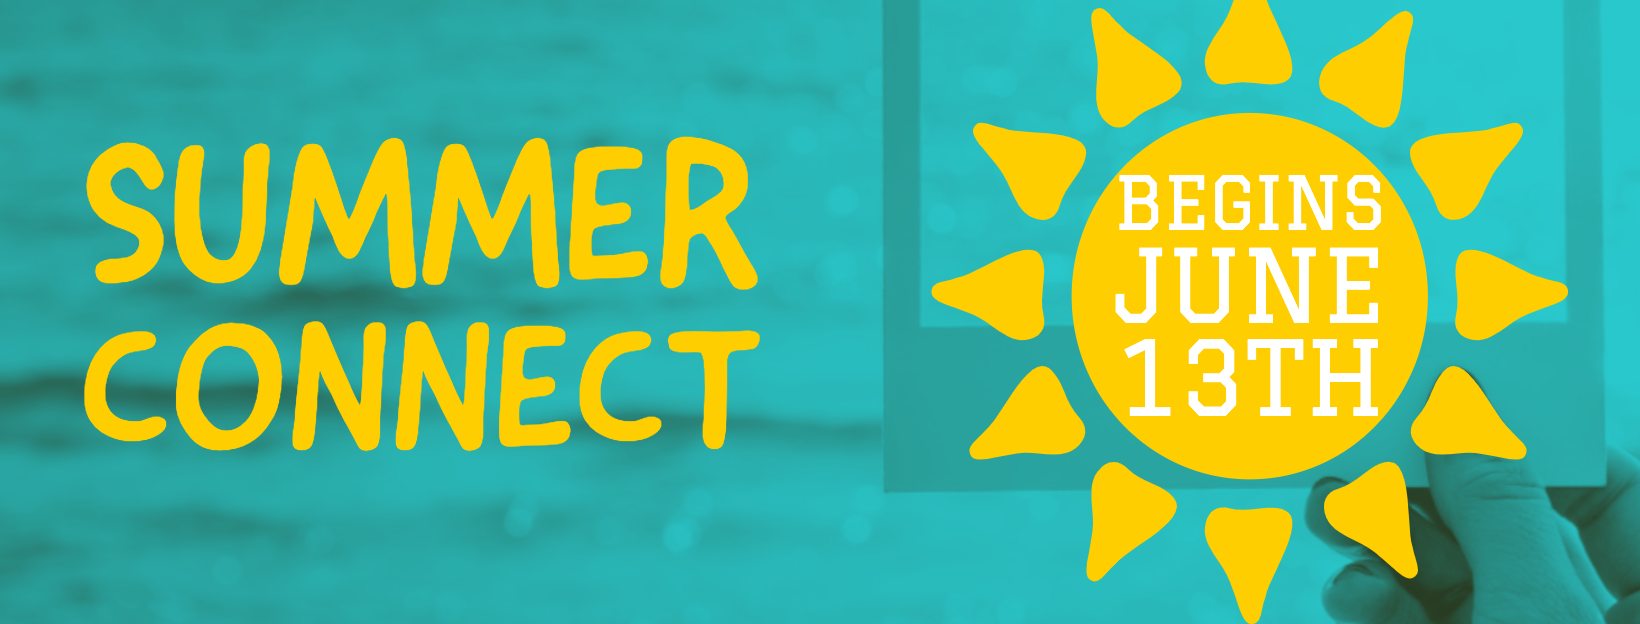 Summer CONNECT banner.png